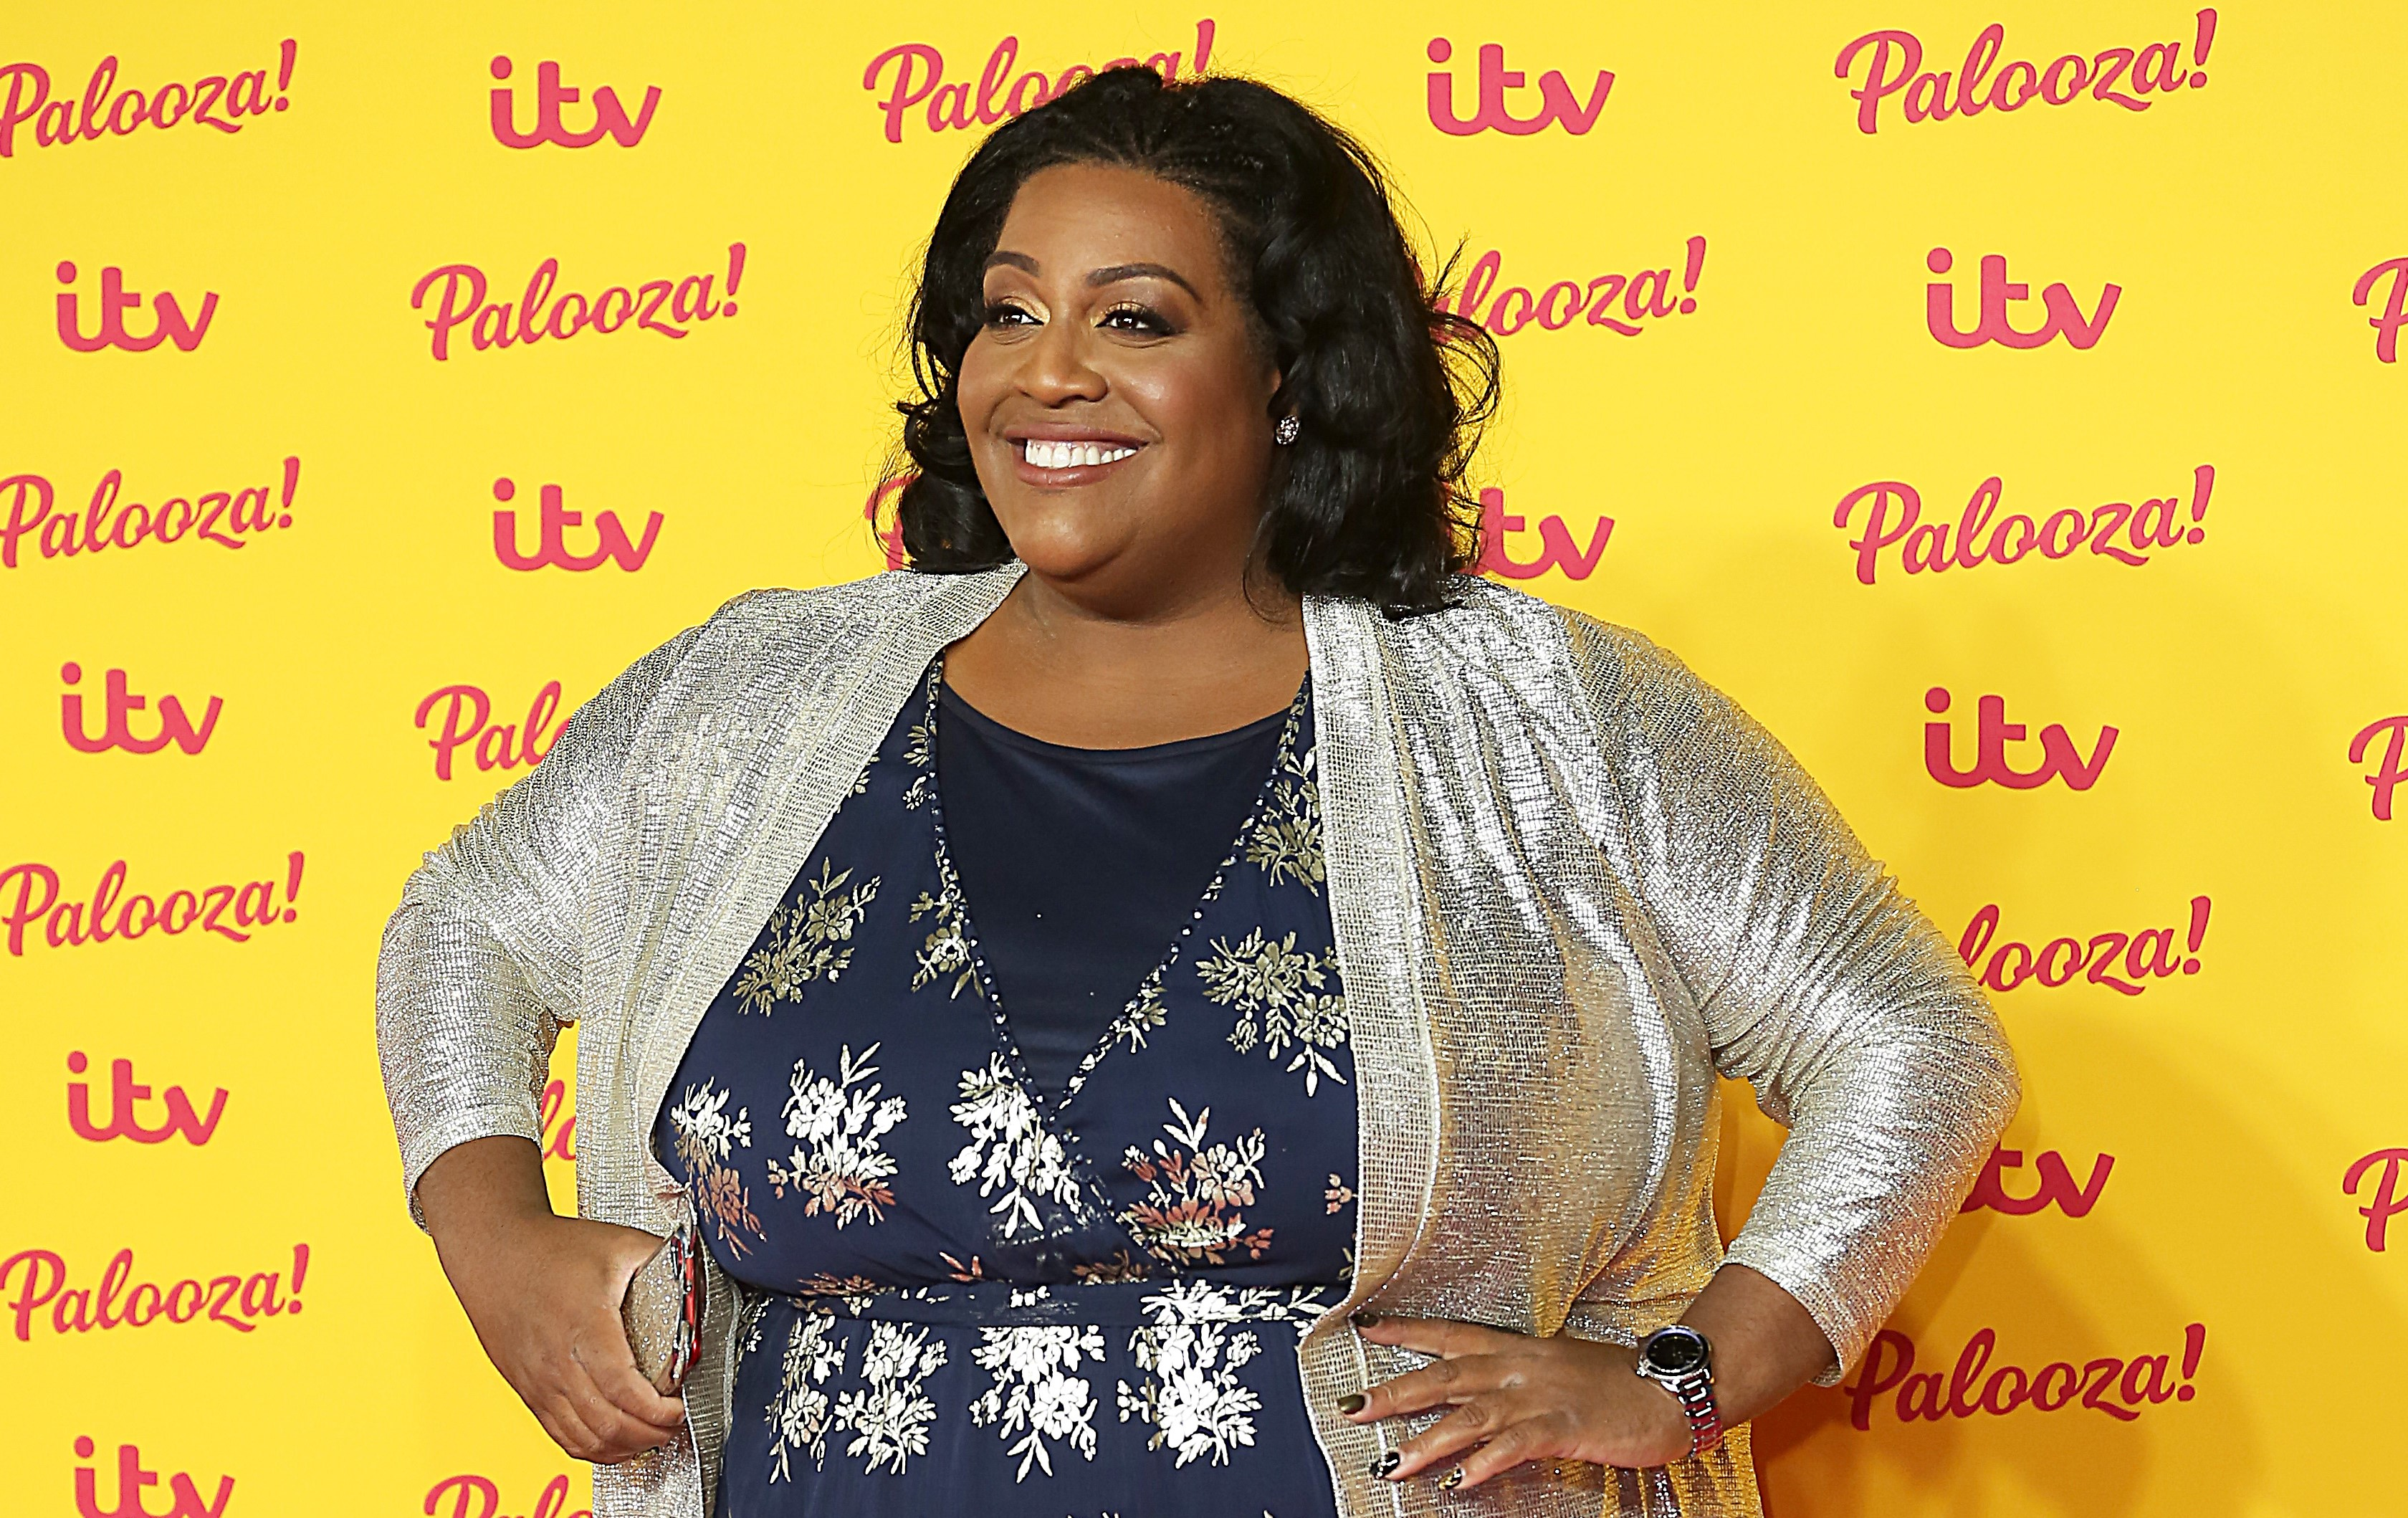 Alison Hammond shares rare family photo